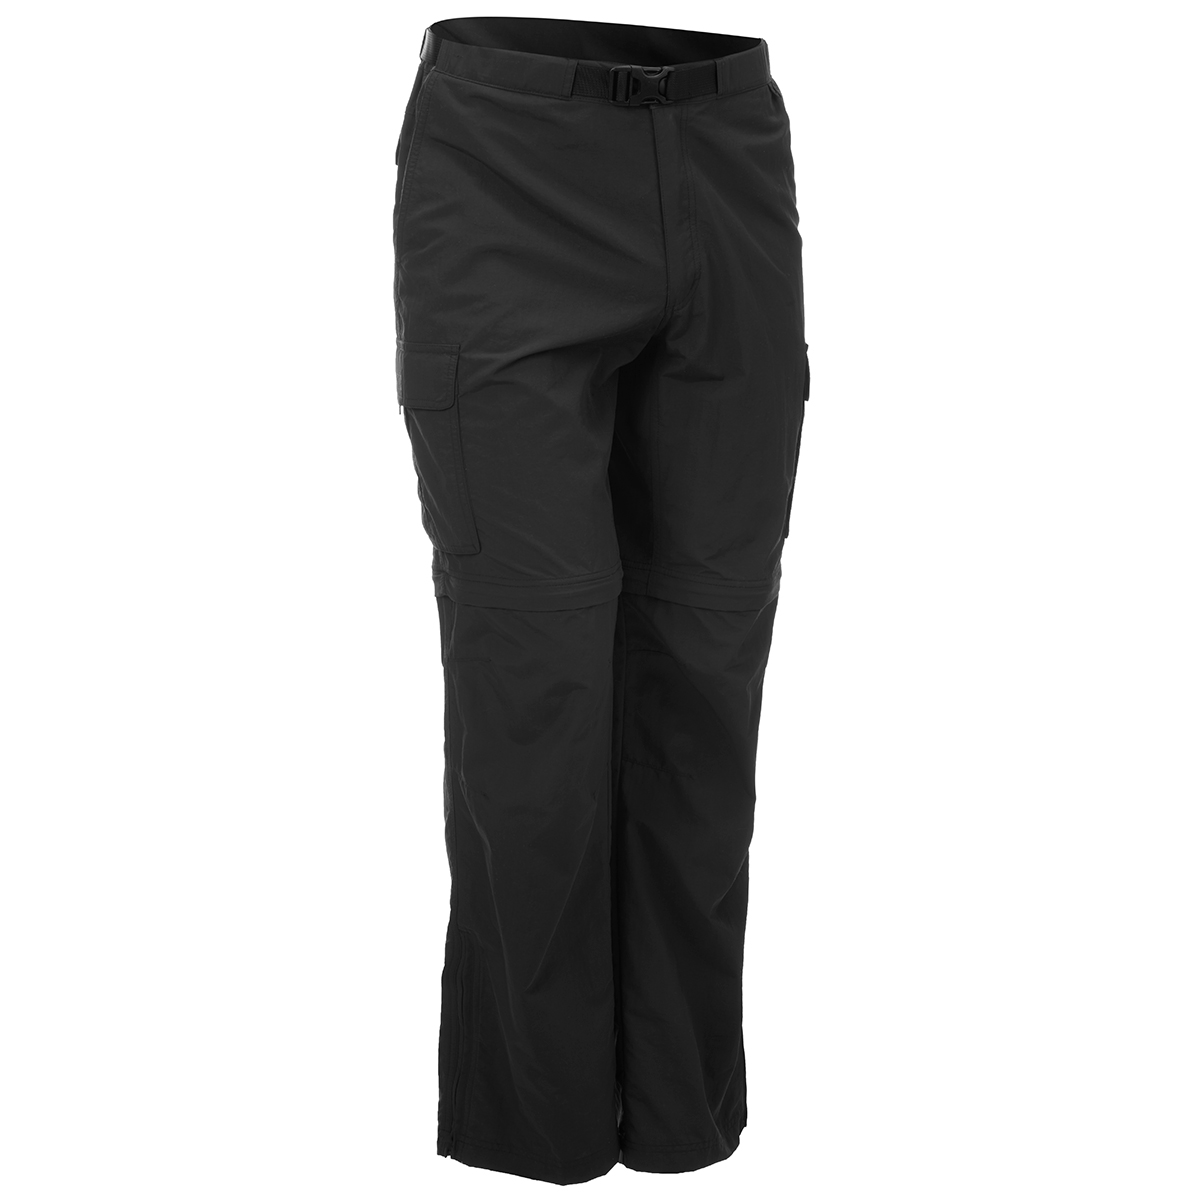 Ems Men's Camp Cargo Zip-Off Pants - Black, 38/32